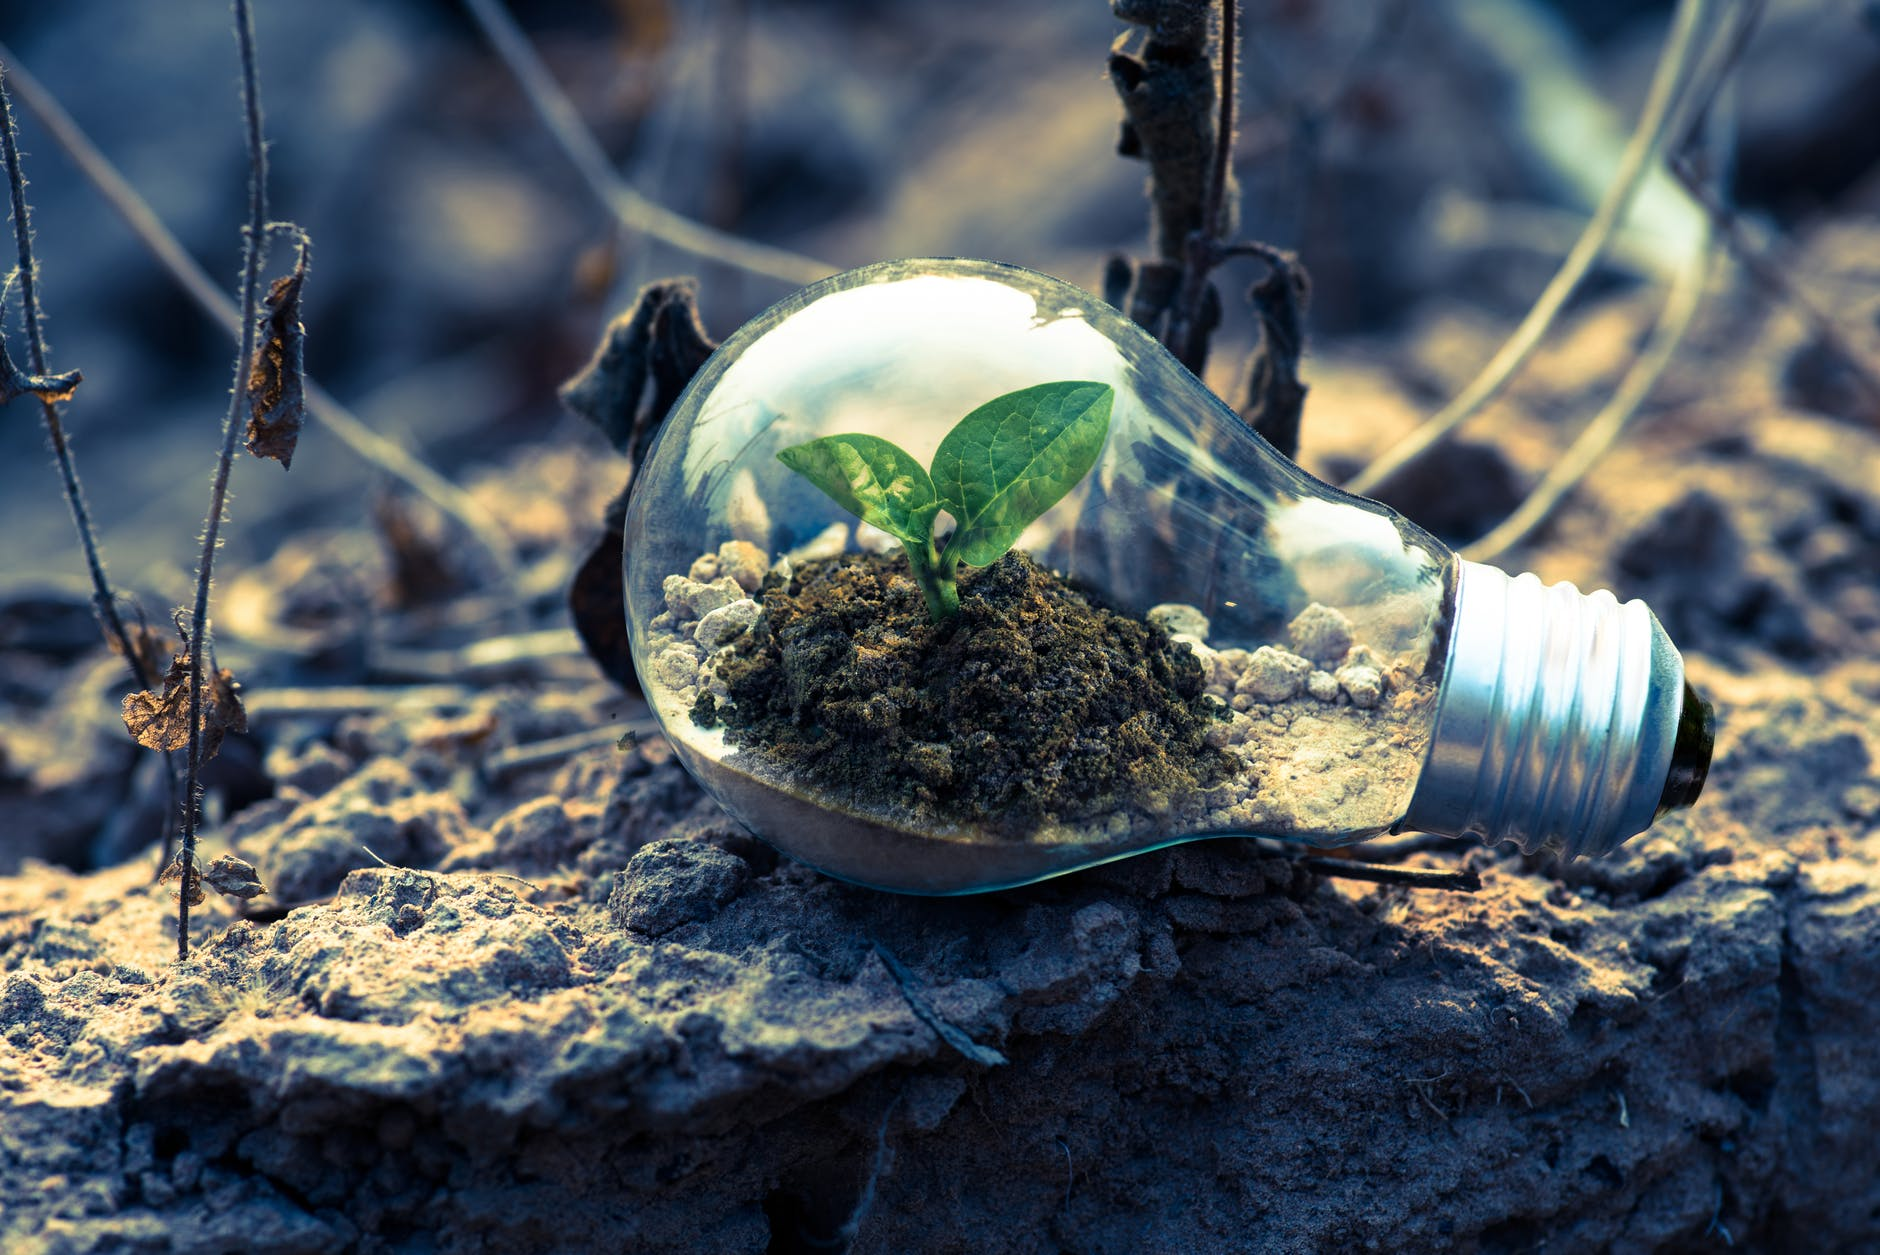 Light bulb lying in the forest with a plant growing inside the lightbulb